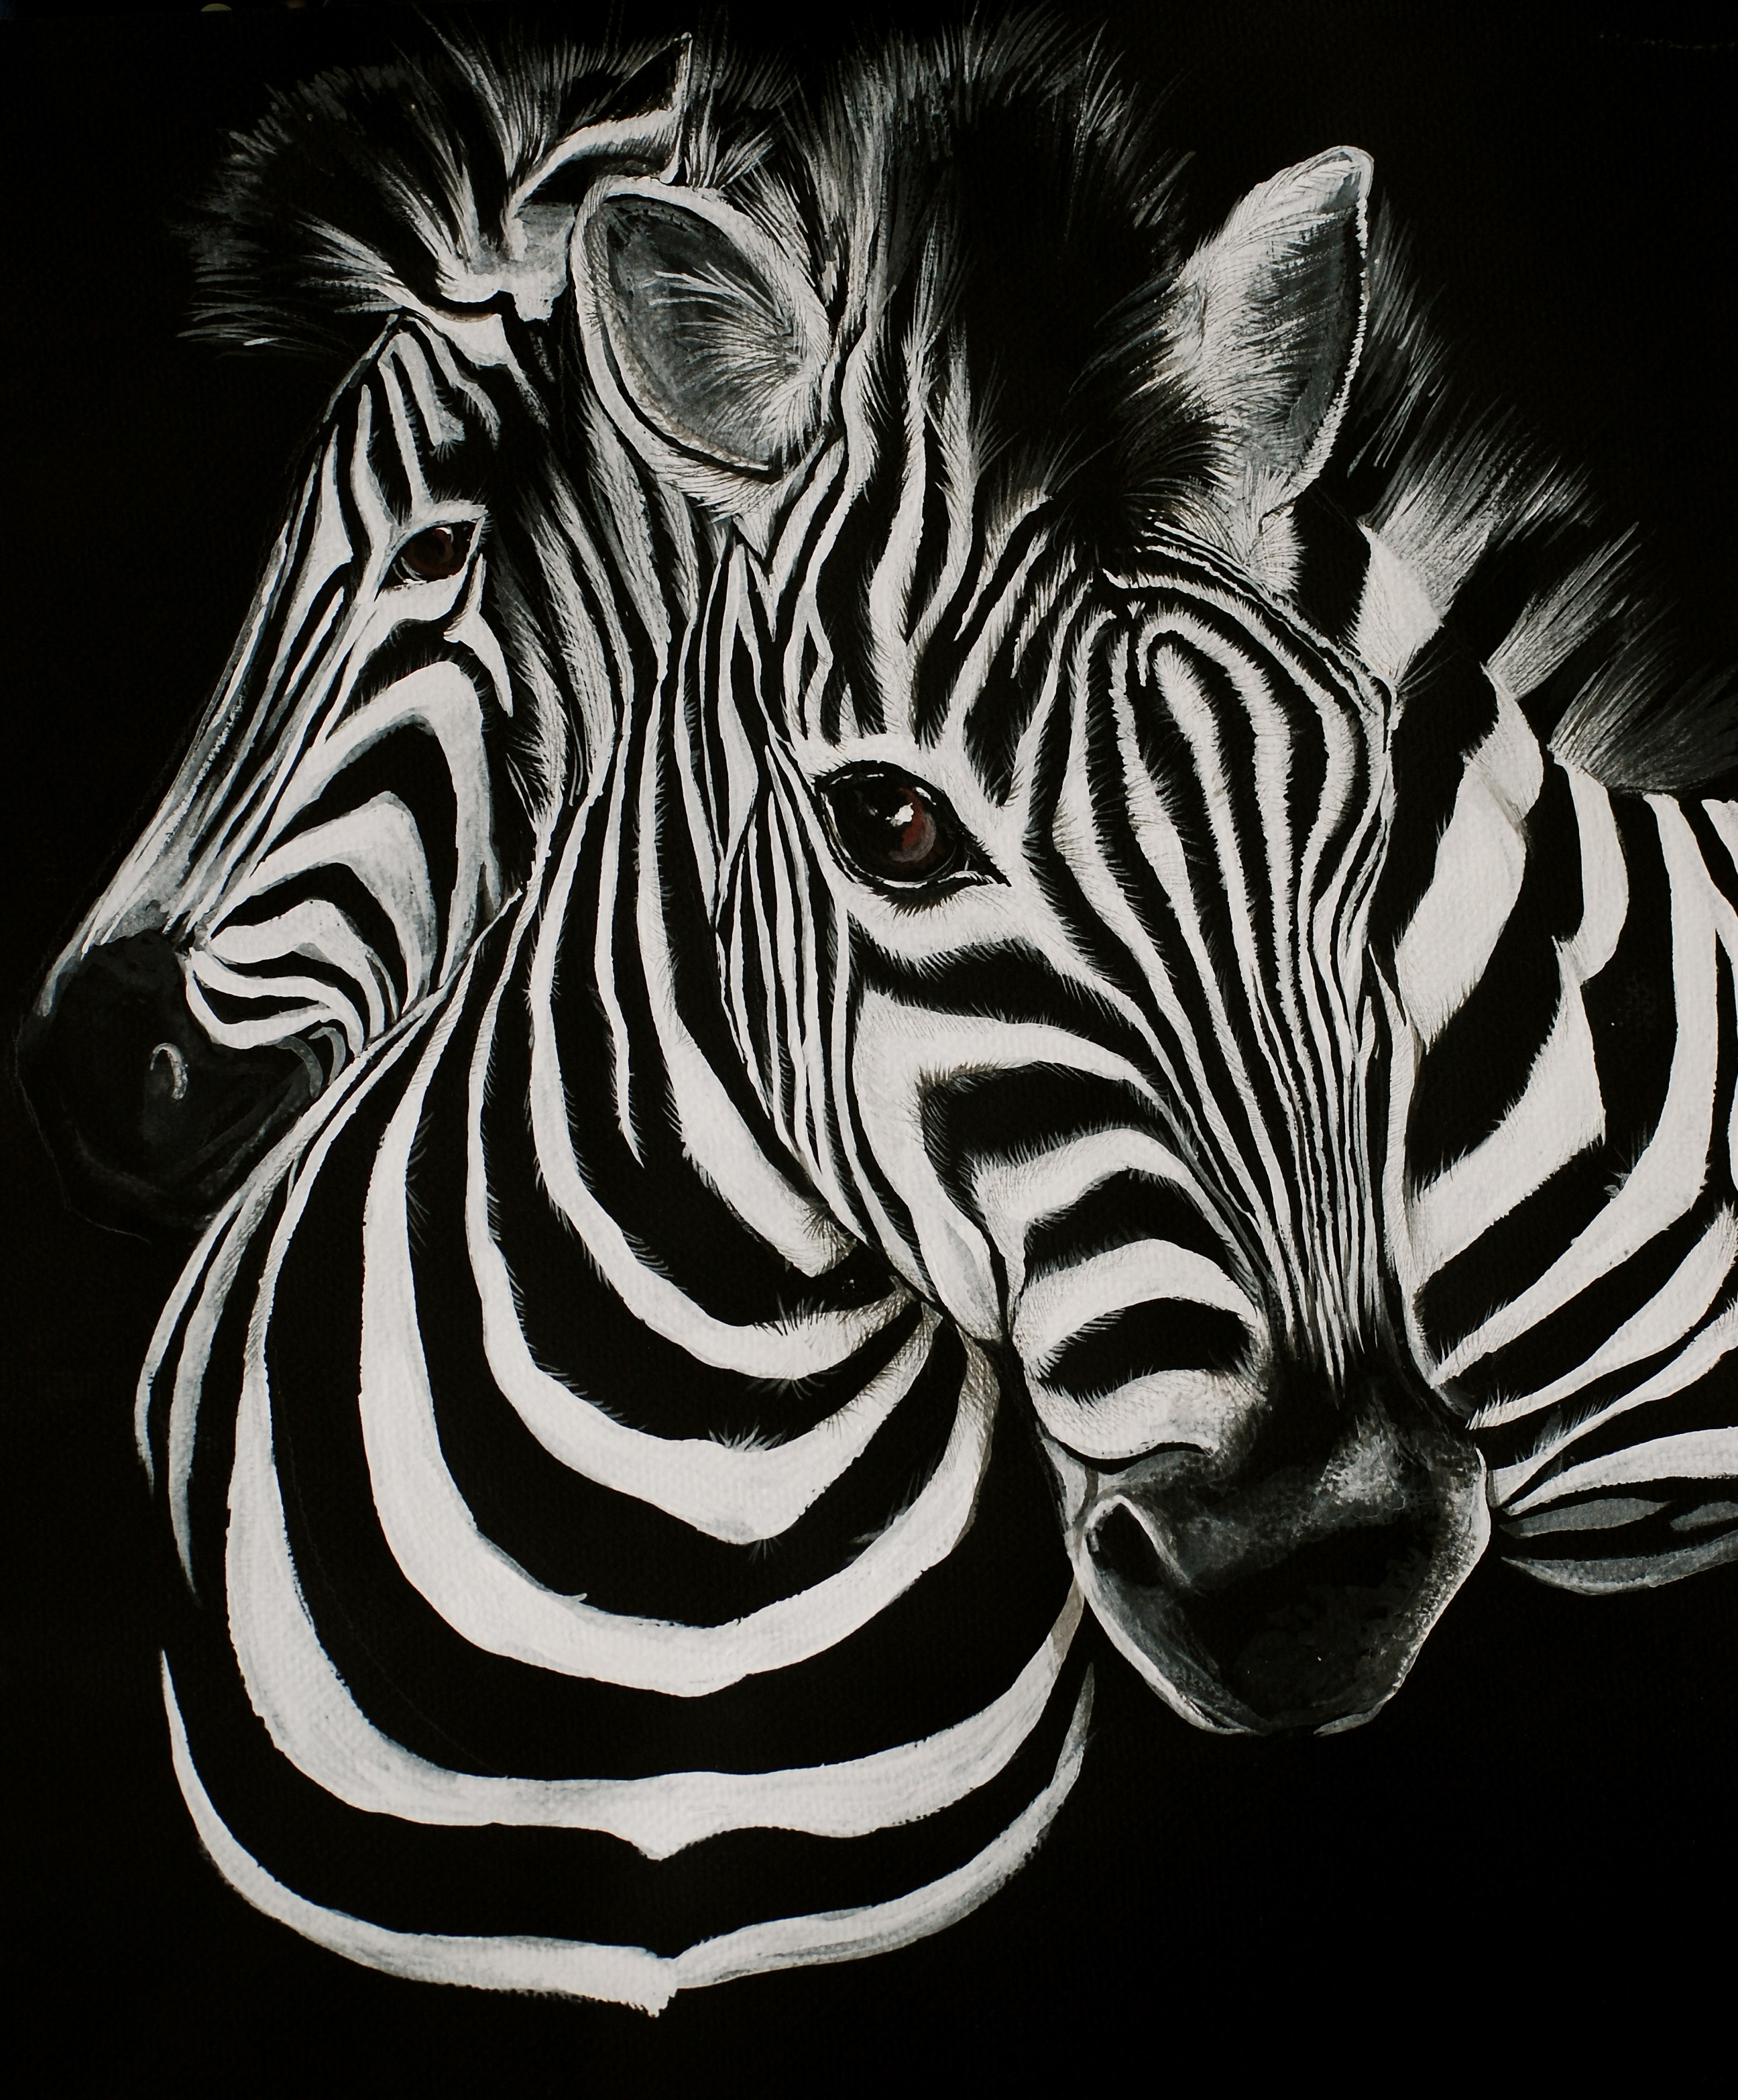 zebra oil painting - photo #40